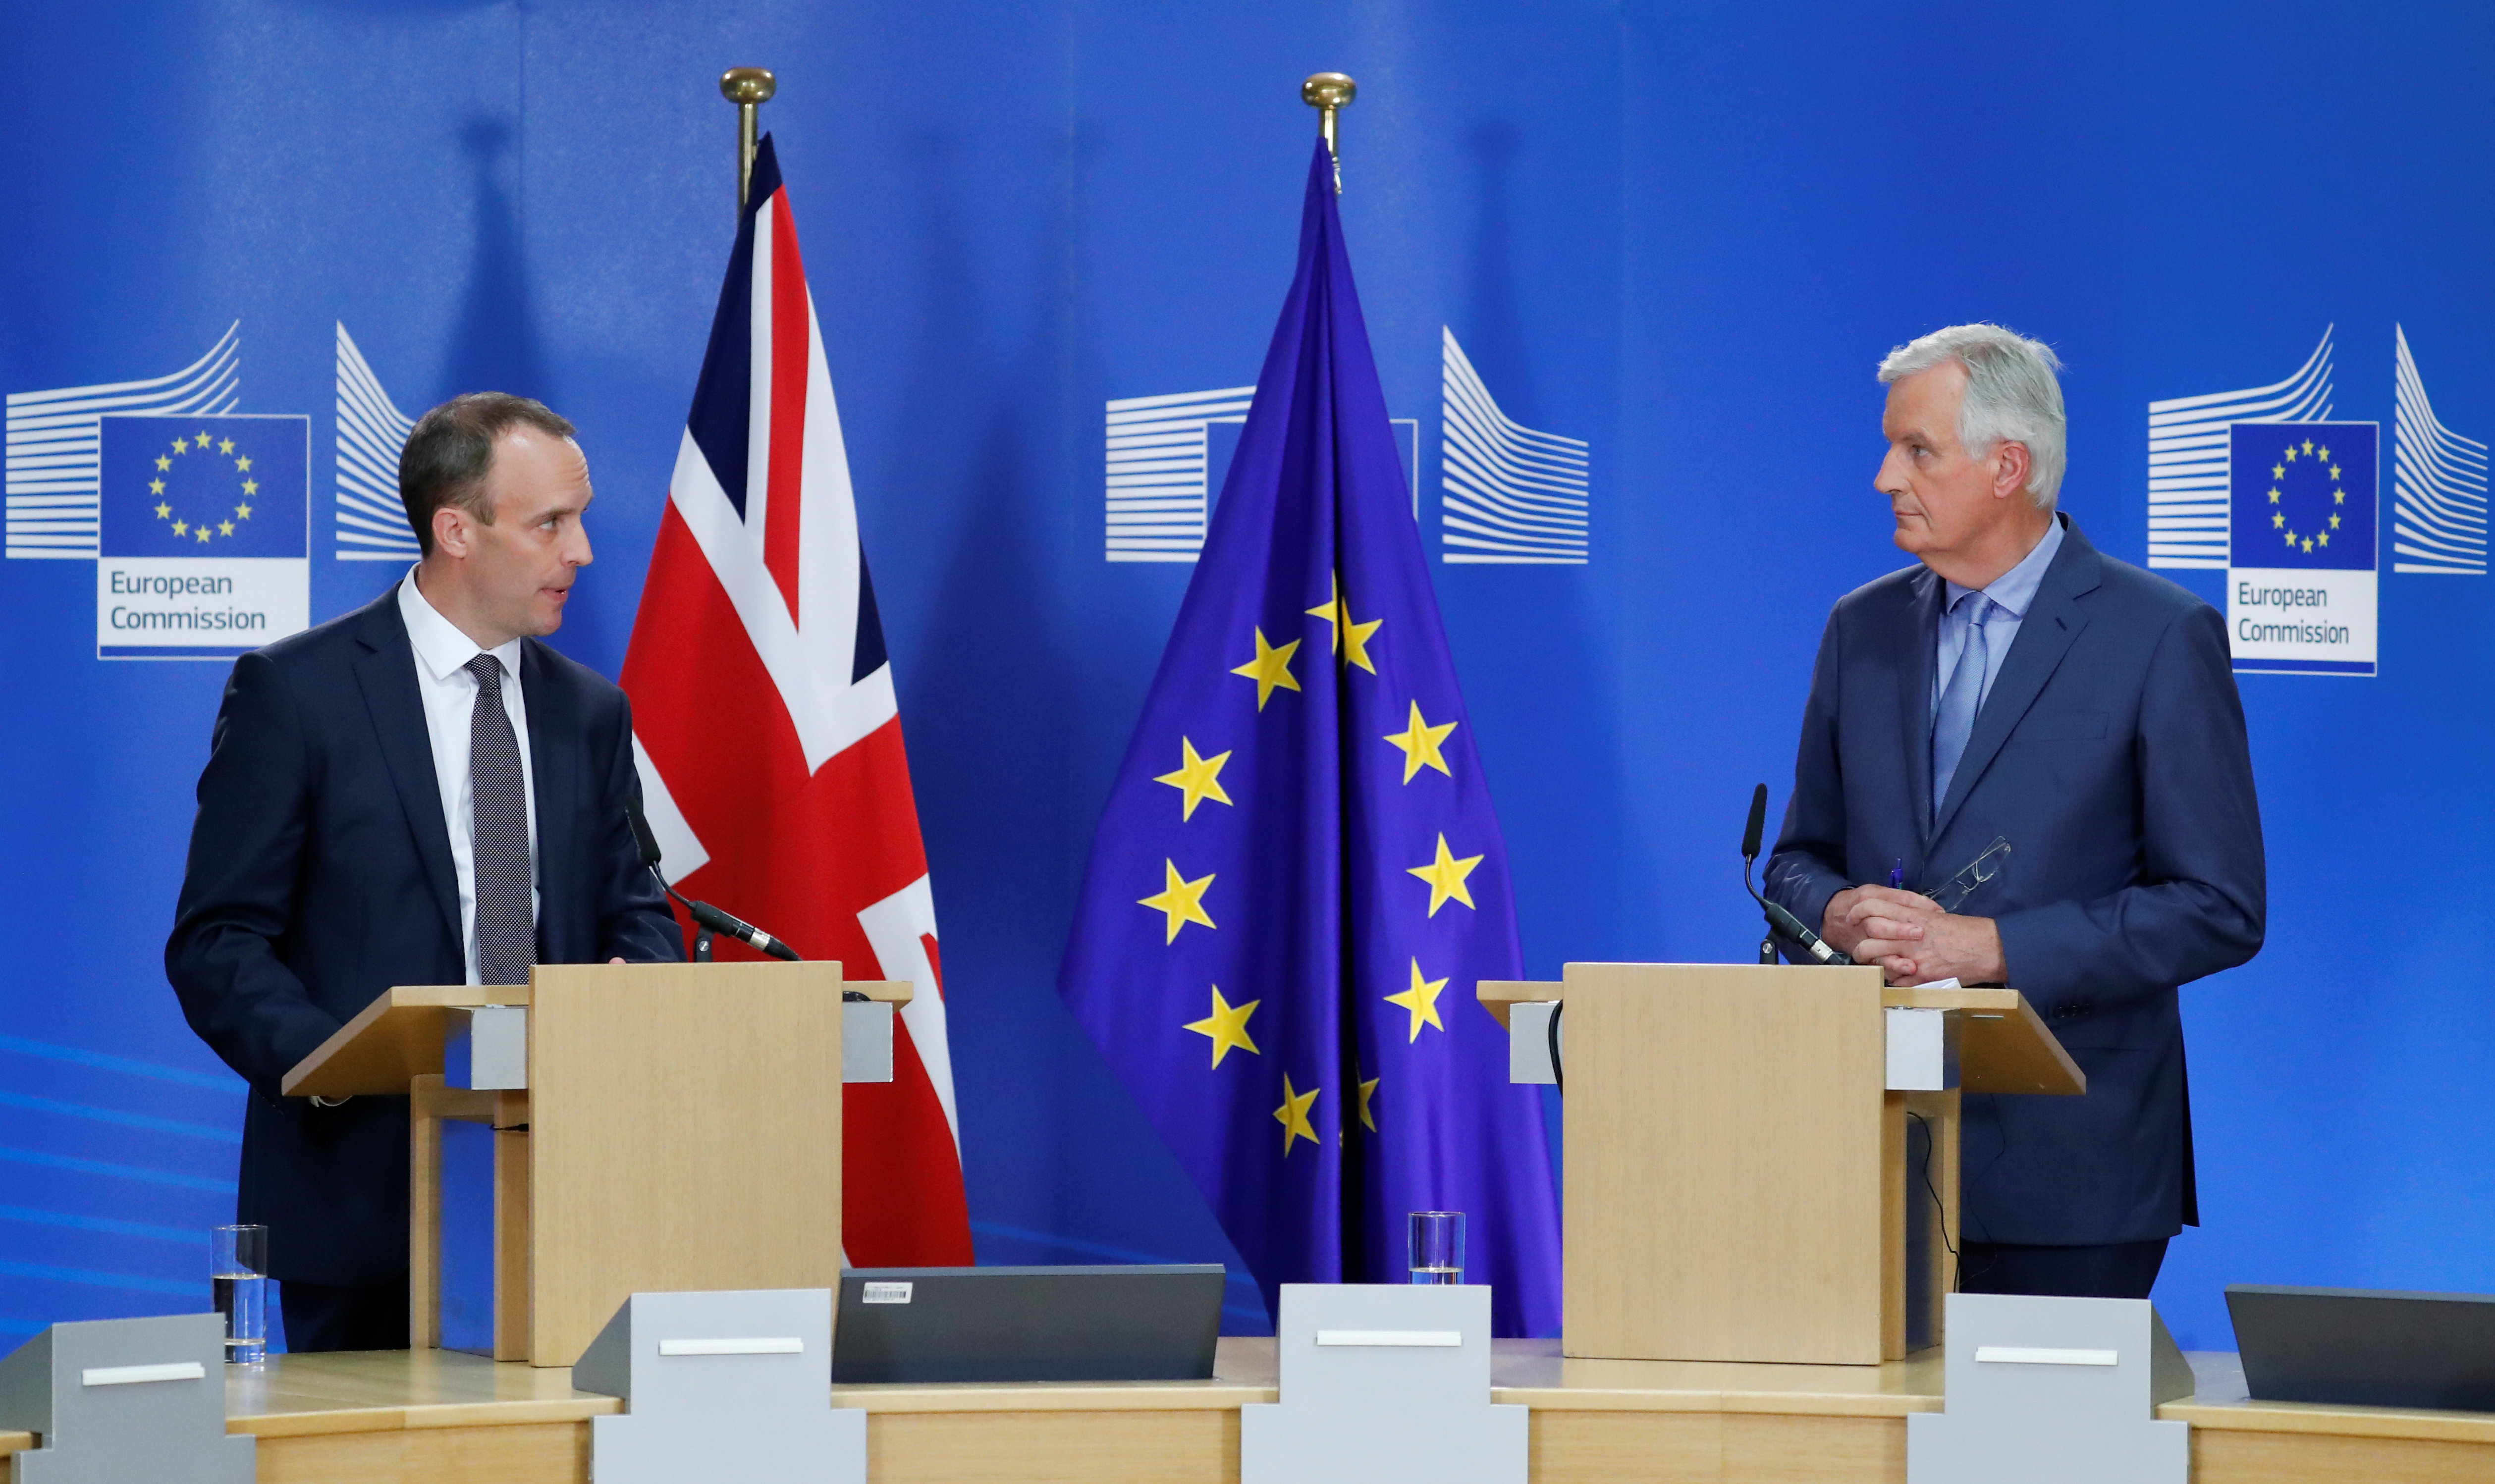 Britain's Secretary of State for Exiting the European Union Dominic Raab and European Union's chief Brexit negotiator Michel Barnier hold a joint news conference in Brussels, Belgium July 26, 2018. REUTERS/Yves Herman - RC1661622400